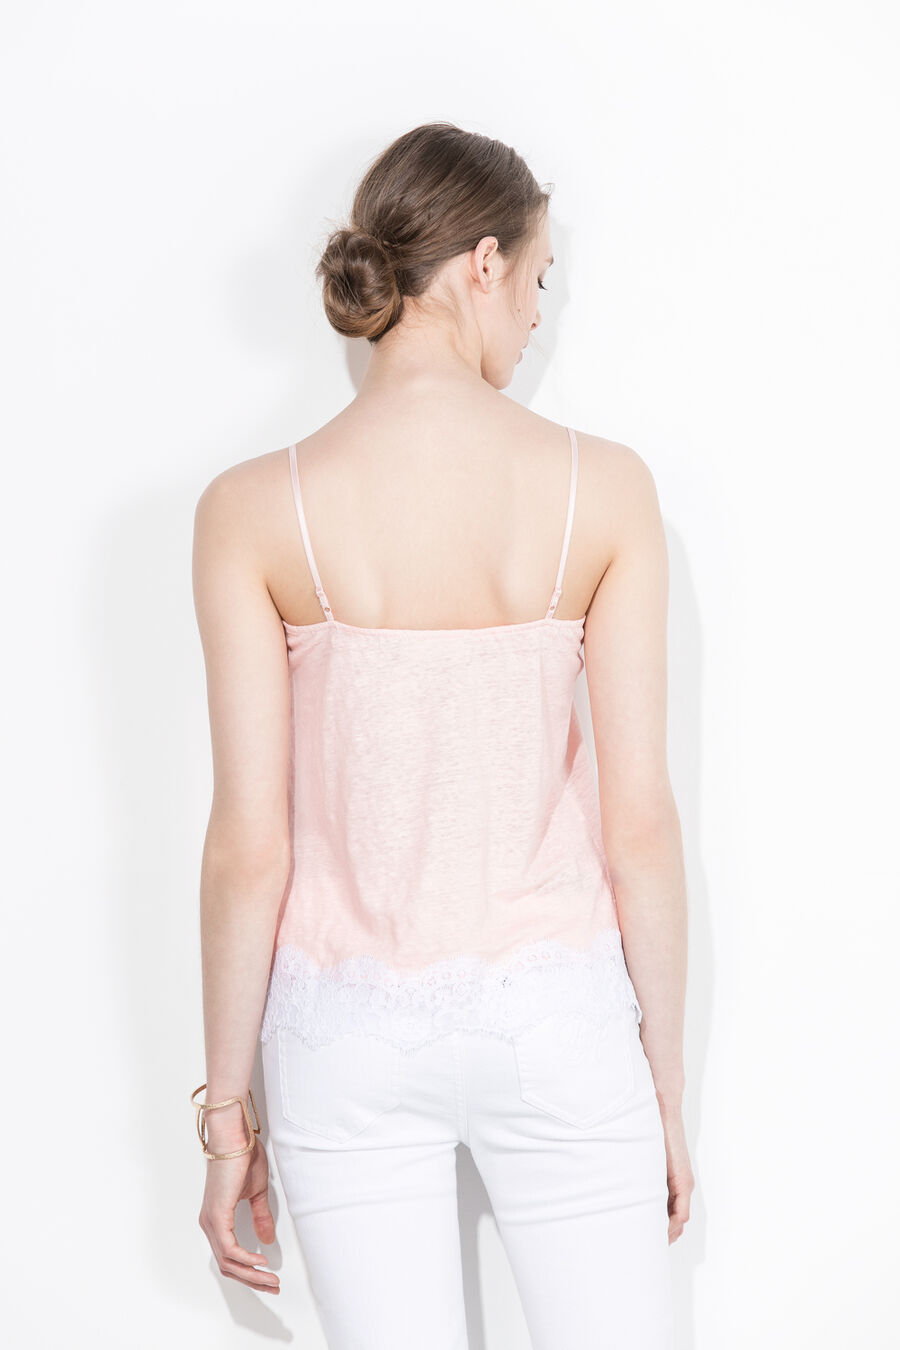 Strapped t-shirt with lace